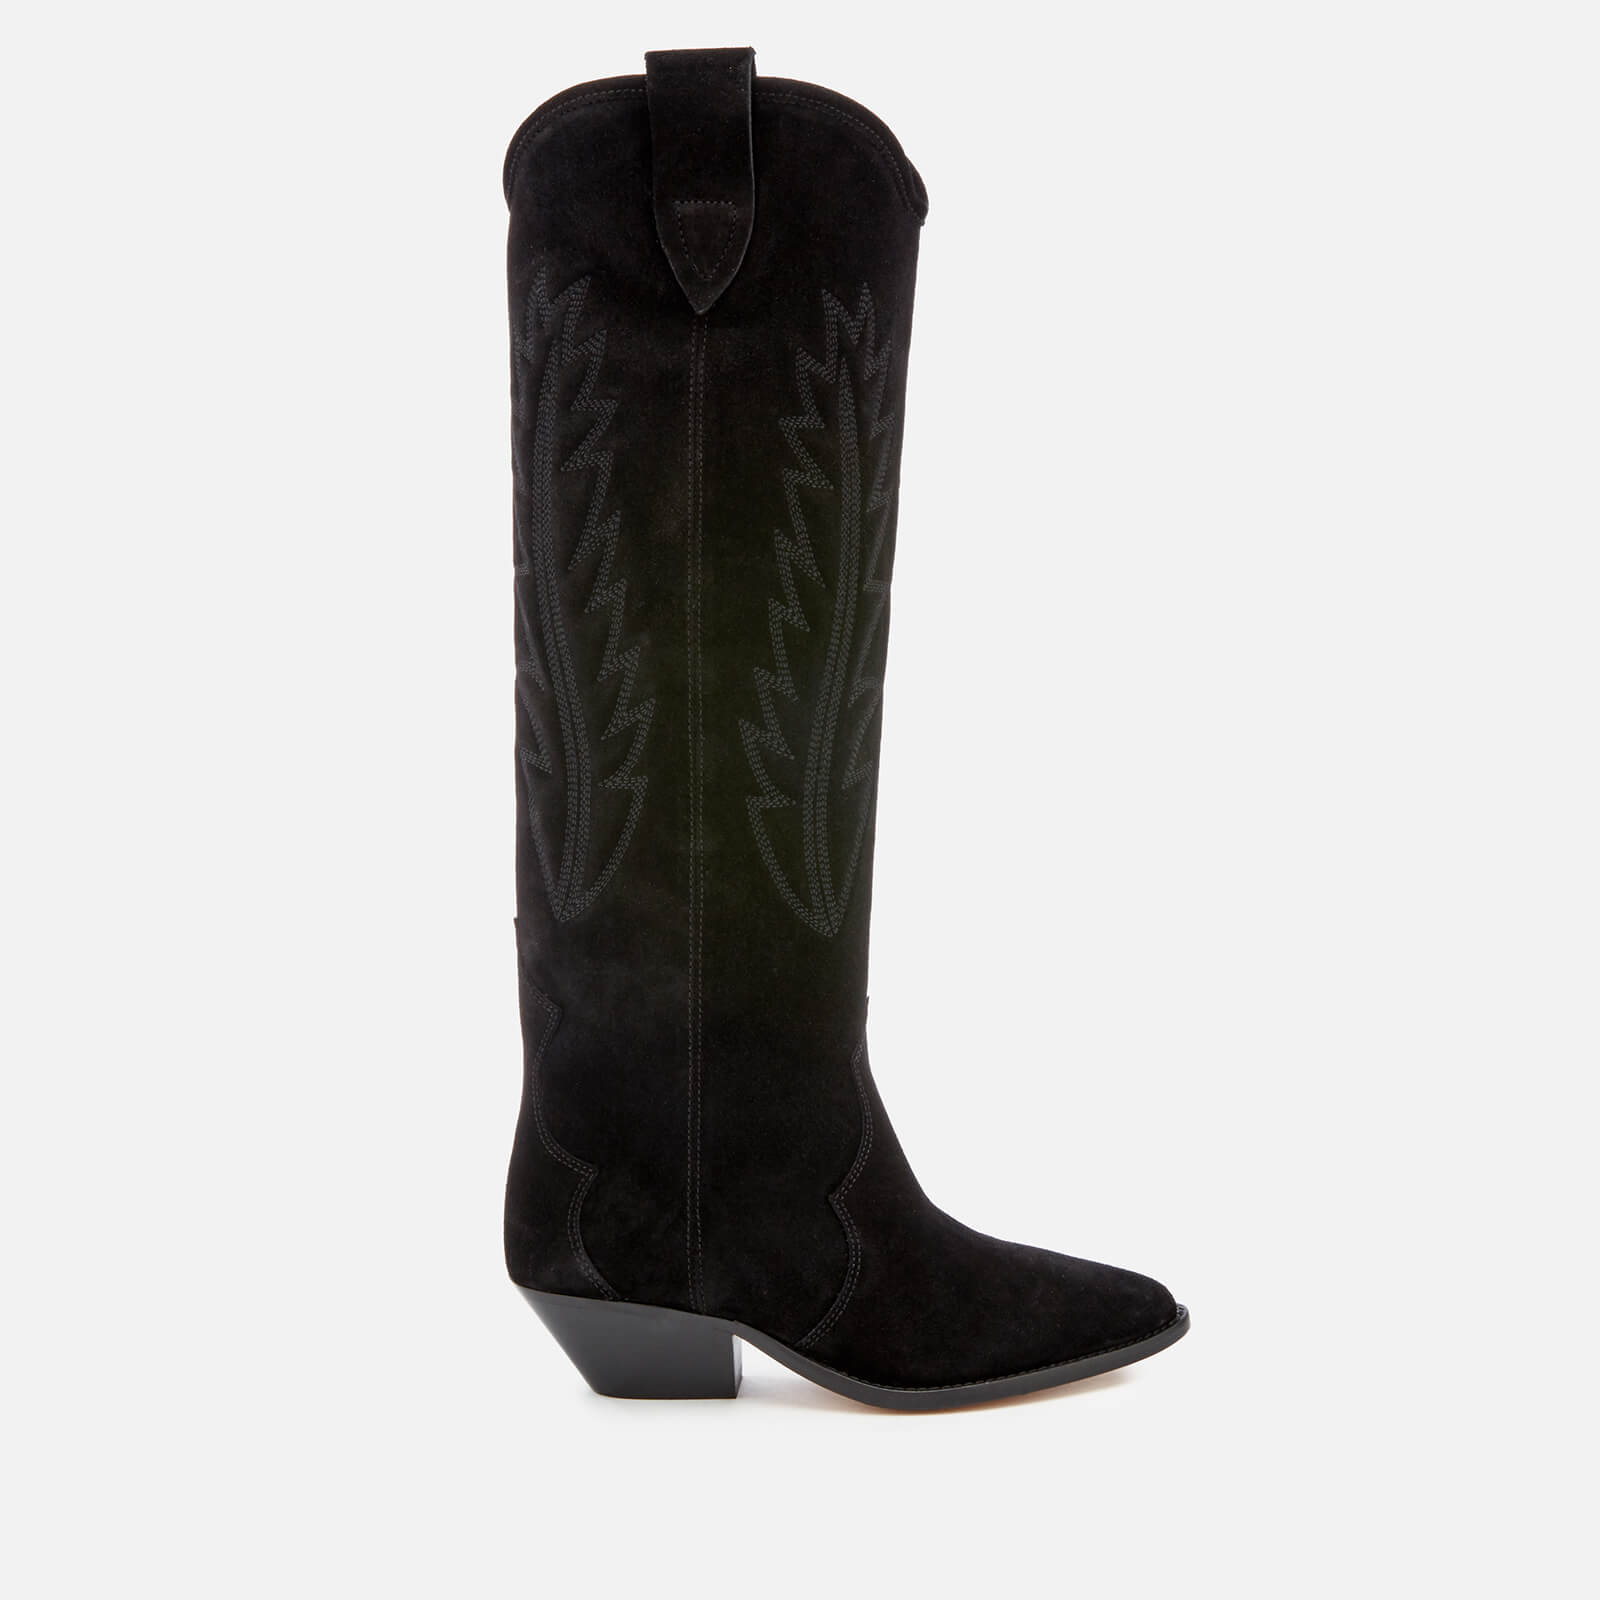 967c9b6a1a1 Isabel Marant Women s Denzy Suede Knee High Boots - Black - Free UK  Delivery over £50